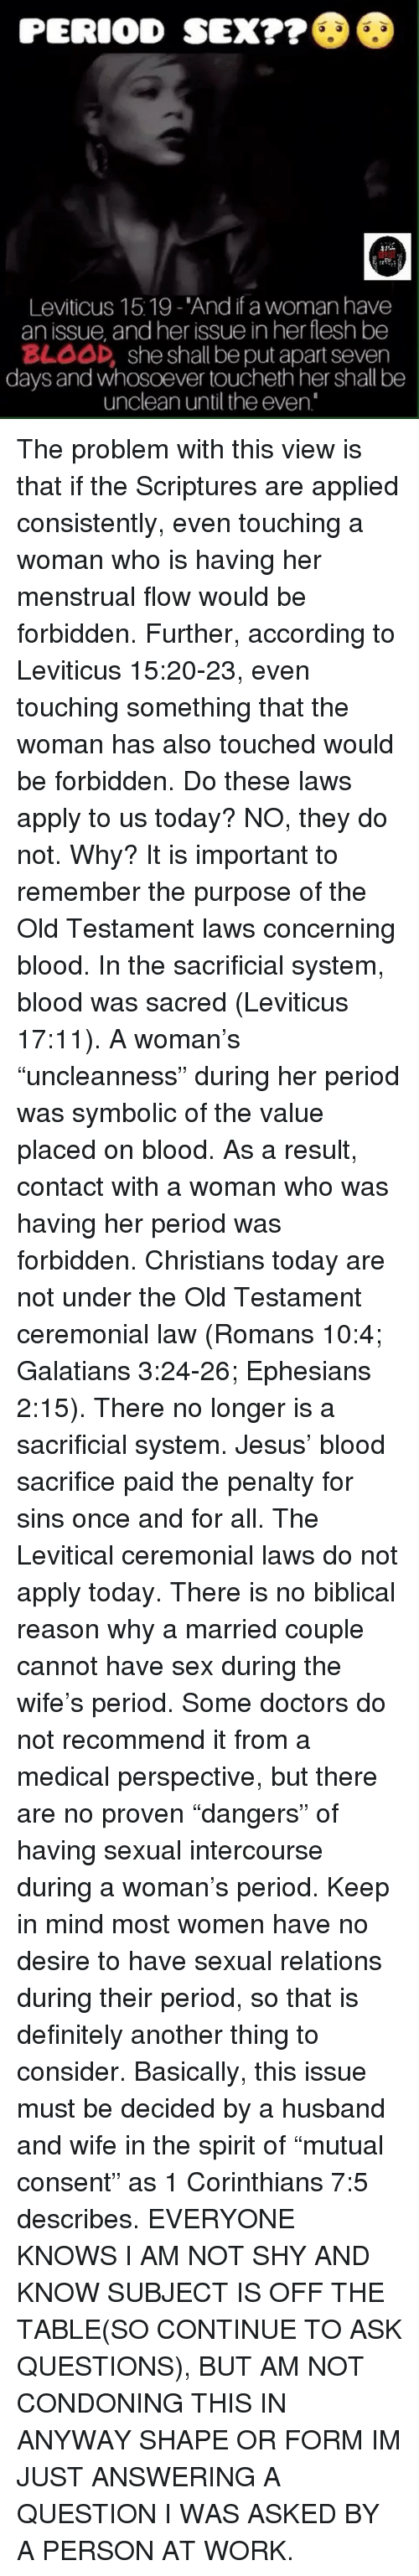 No sex before marriage in the bible